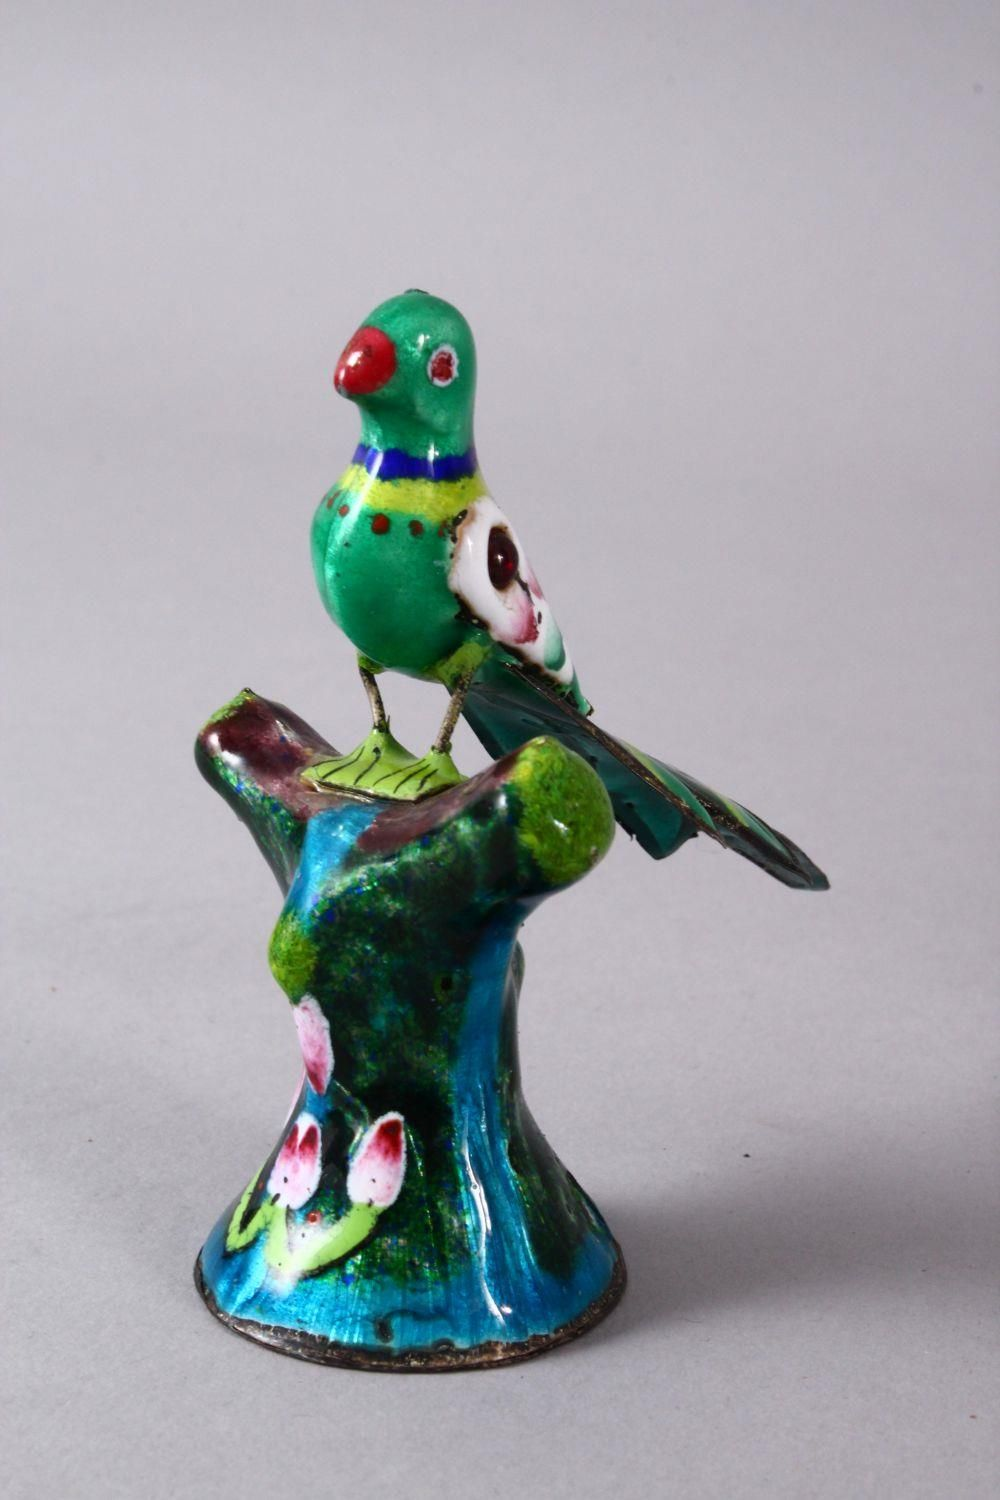 TWO 19TH / 20TH CENTURY INDIAN ENAMEL BIRD FIGURES, one of a peacock, the other of a bird upon - Image 5 of 8